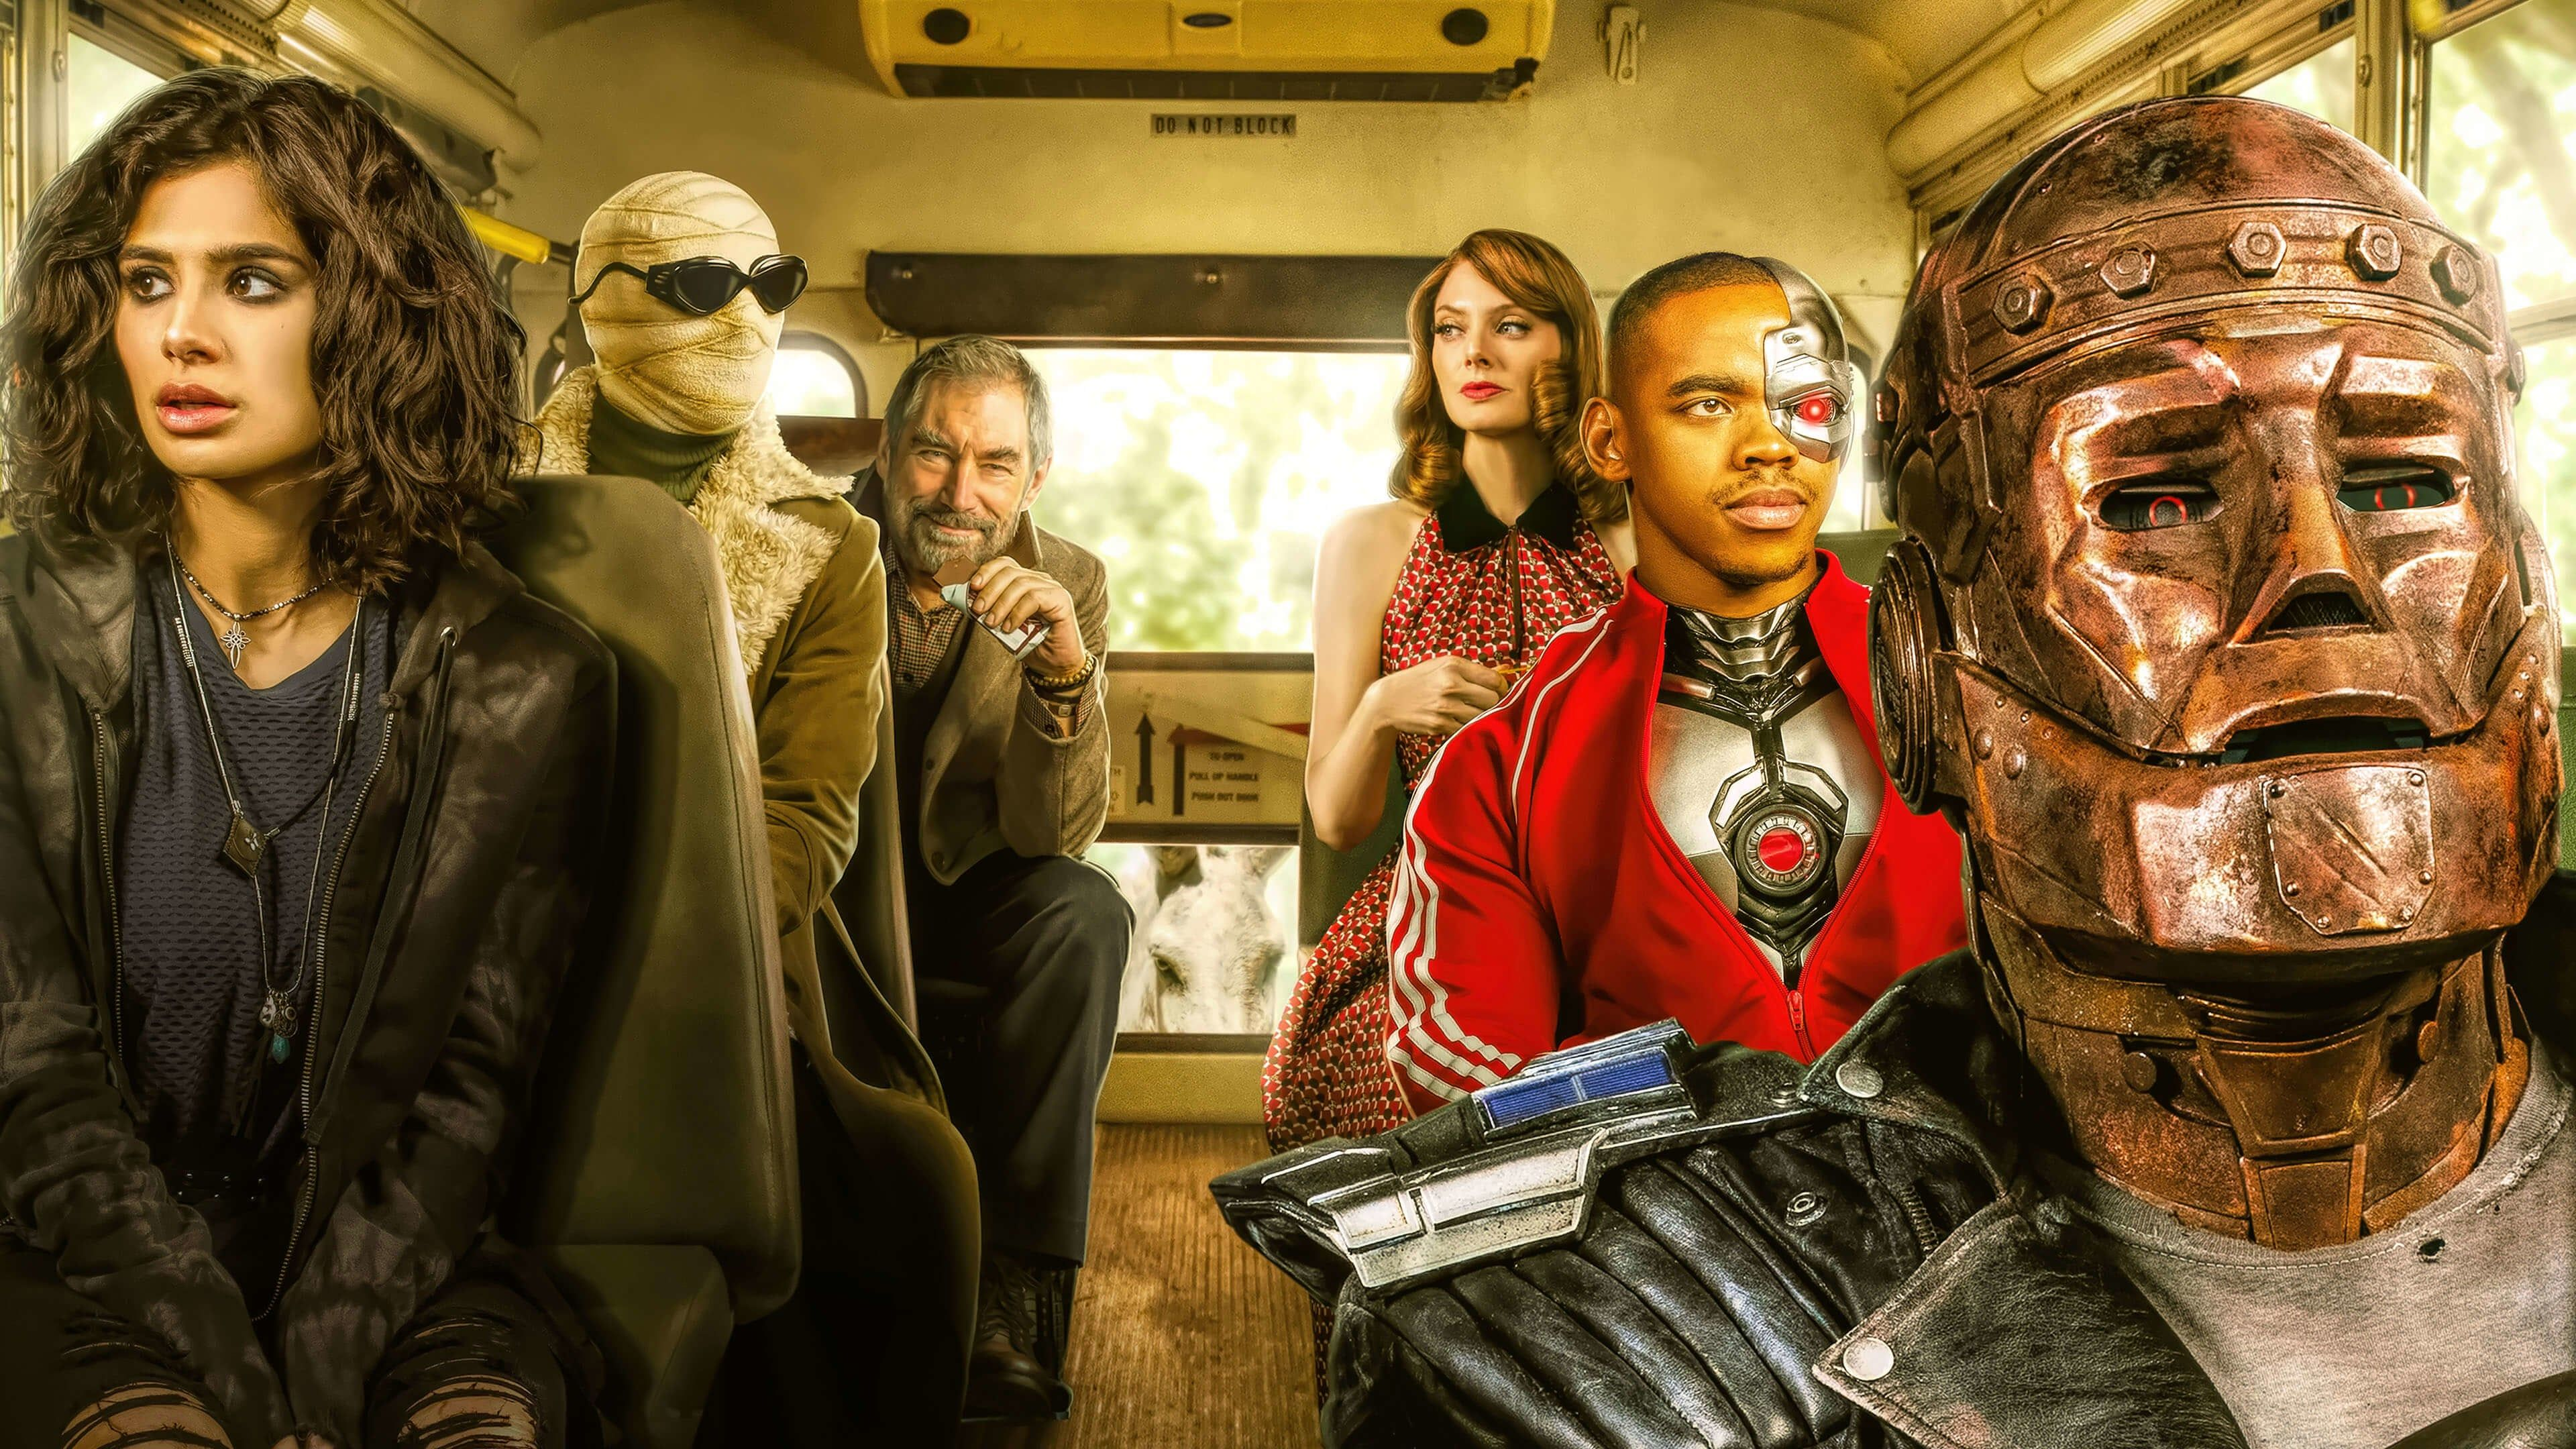 Doom Patrol Wallpapers - Top Free Doom Patrol Backgrounds ...